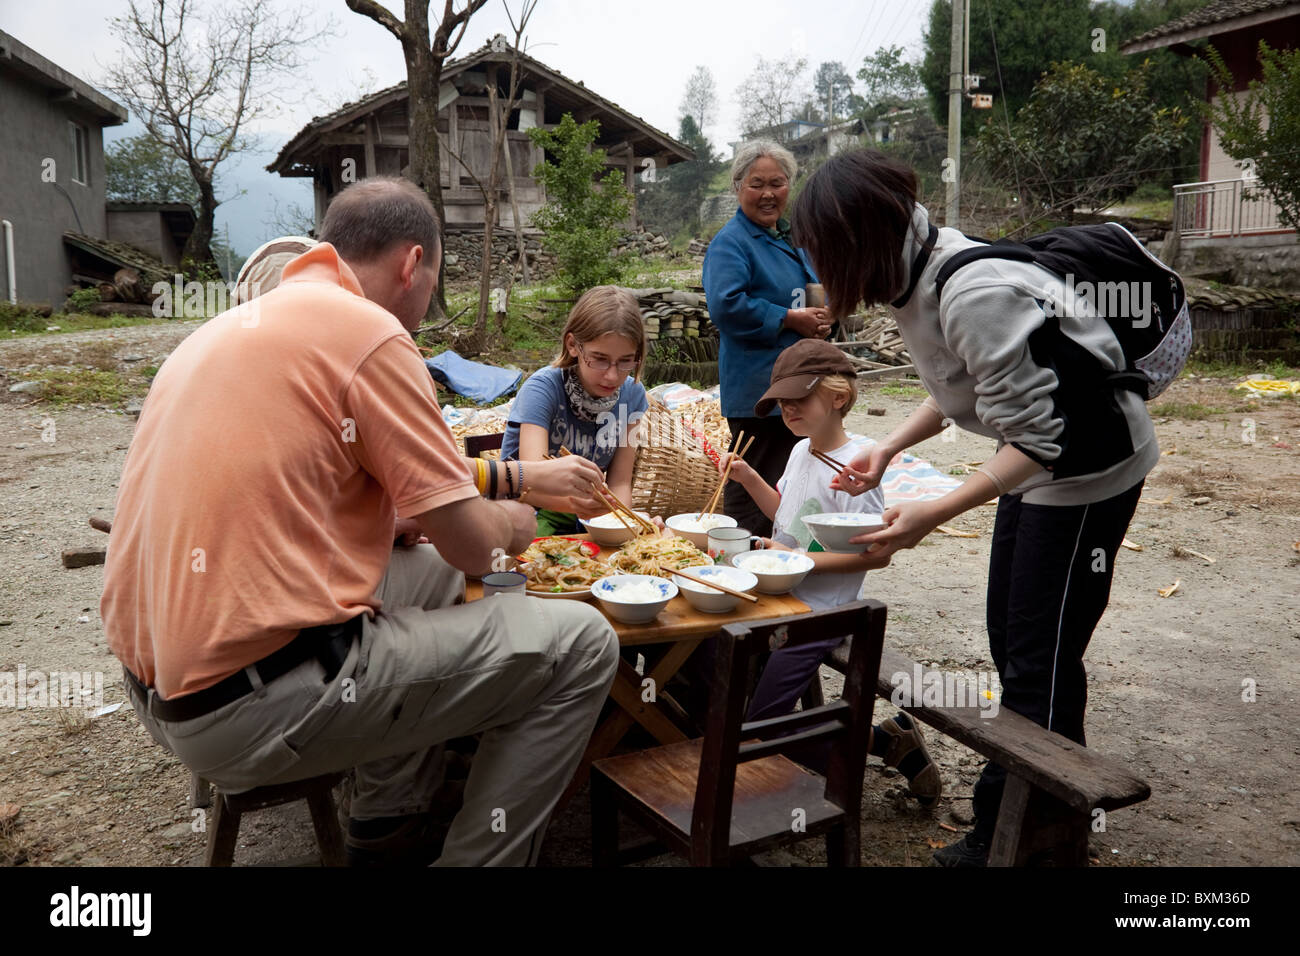 A group of trekkers having lunch prepared in a small isolated village in west China. Stock Photo